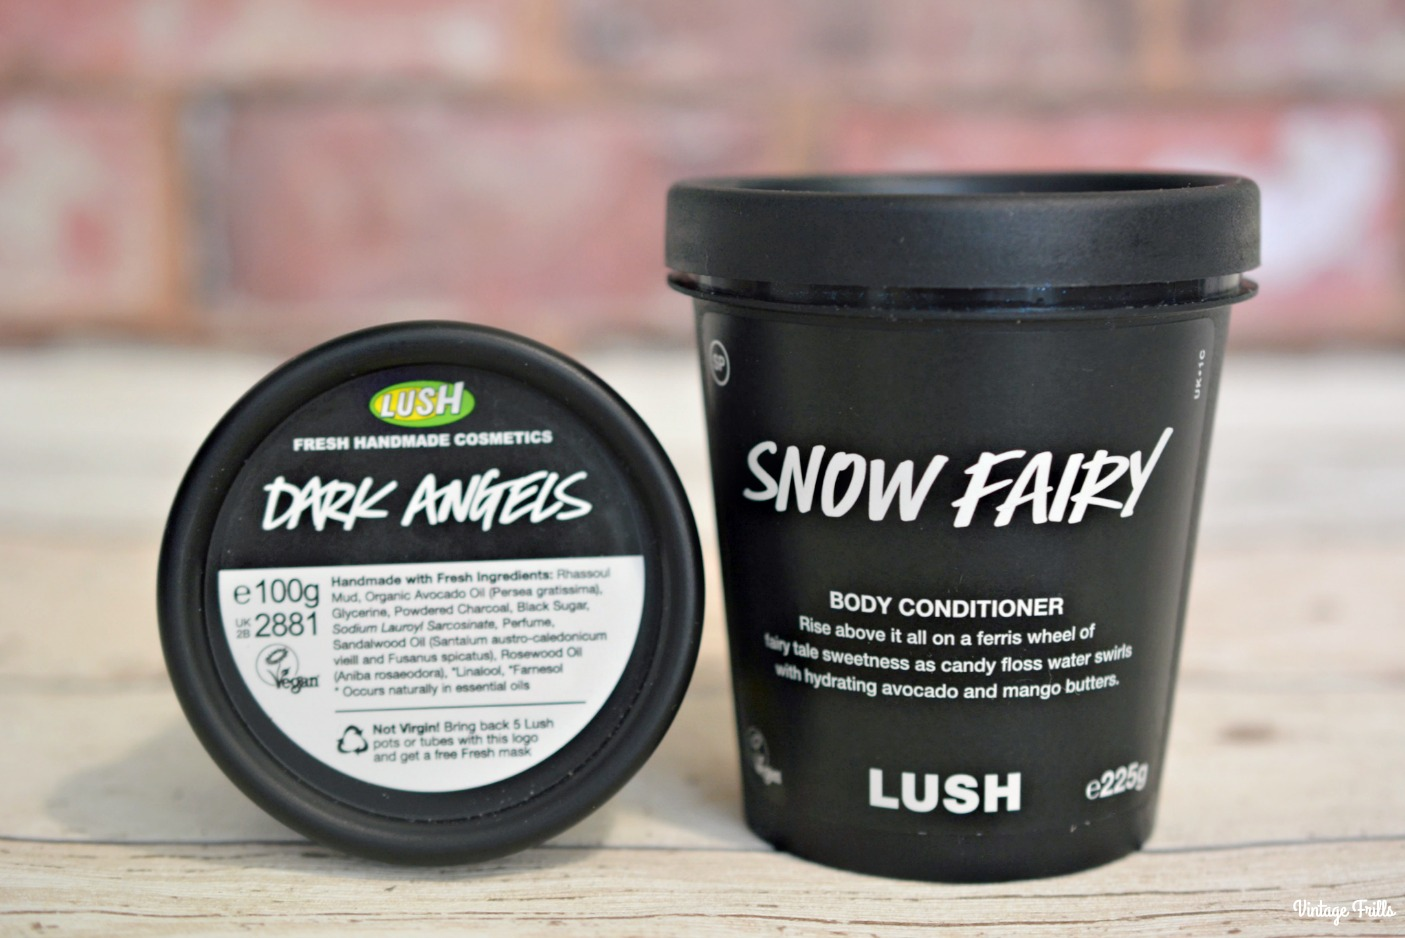 Lush Snow Fairy and Dark Angels